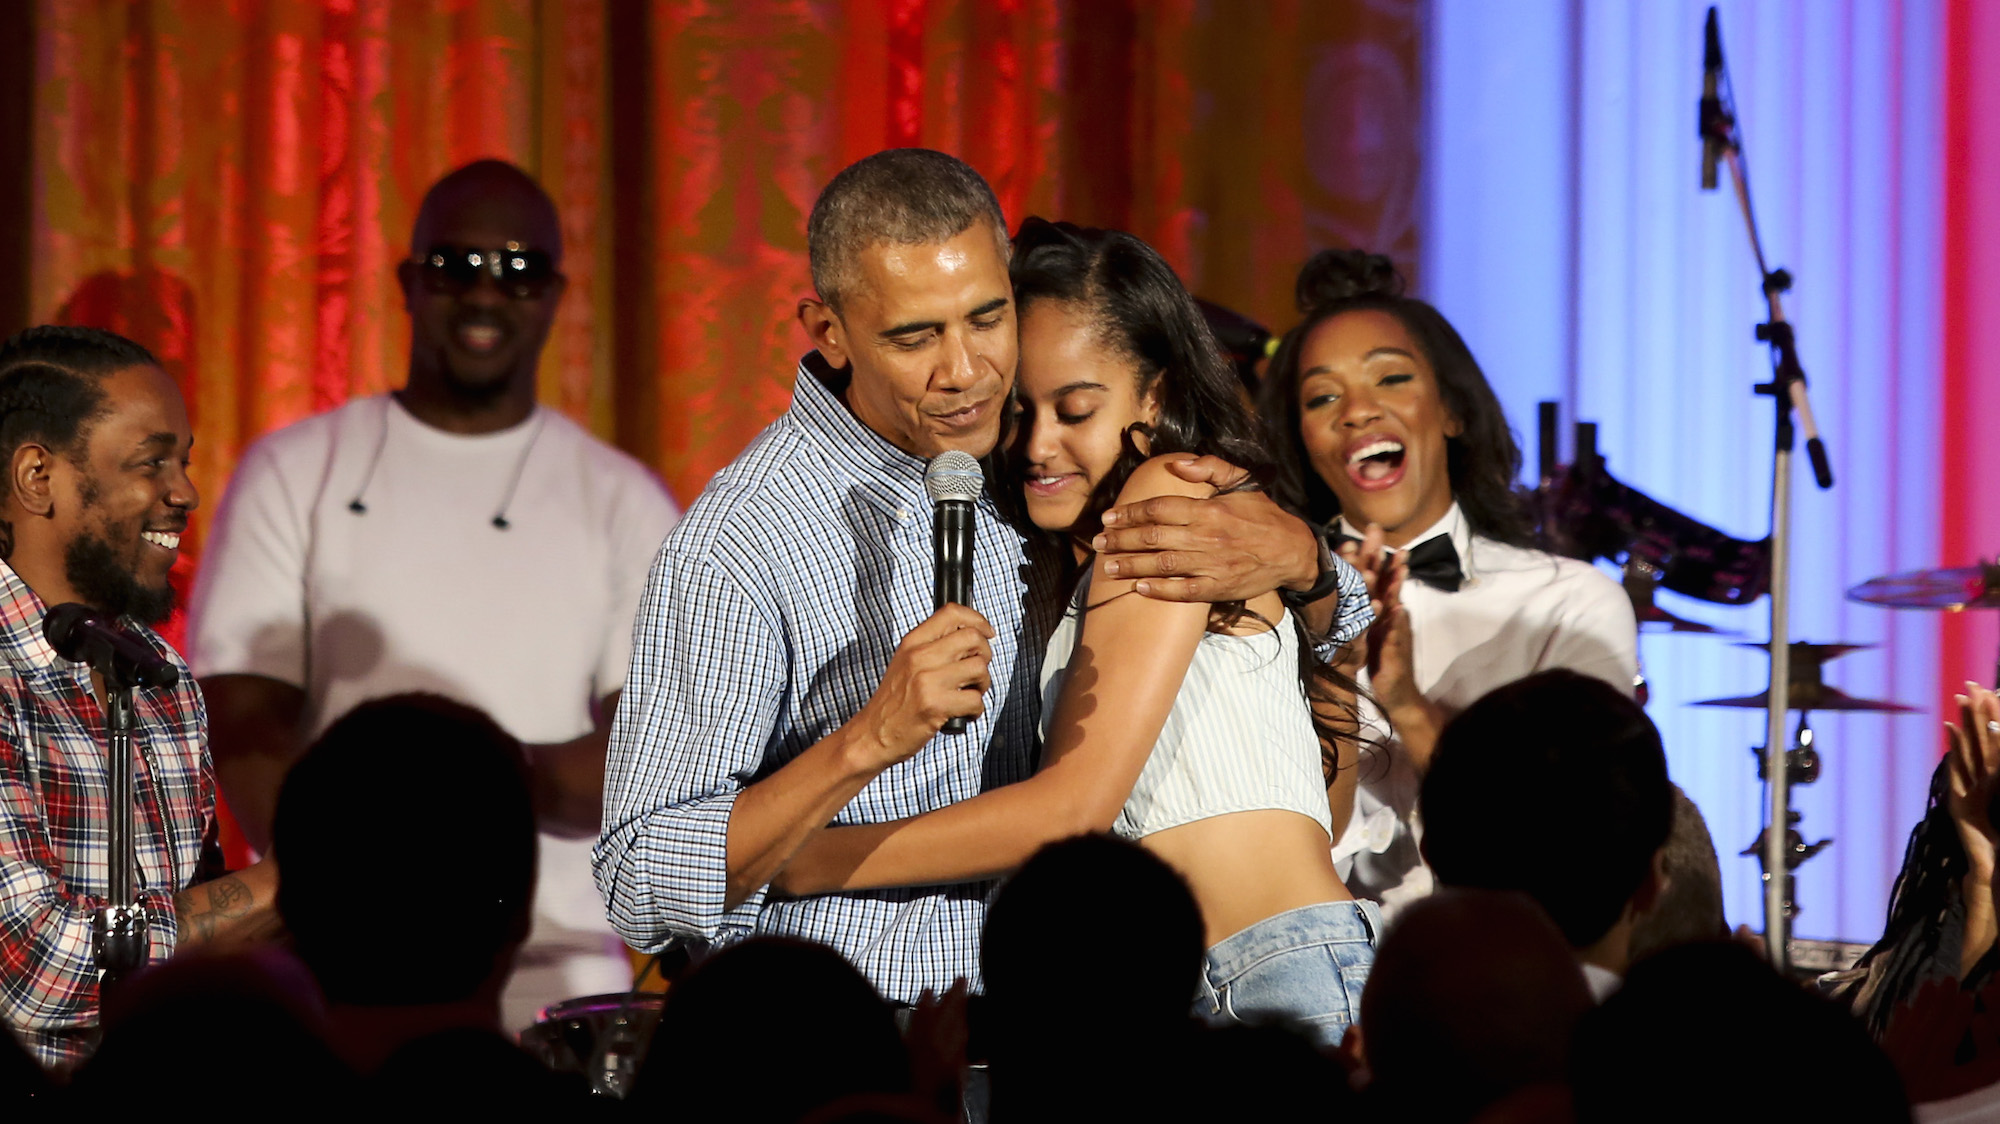 Here's why the internet is divided over Malia Obama's secret Facebook account